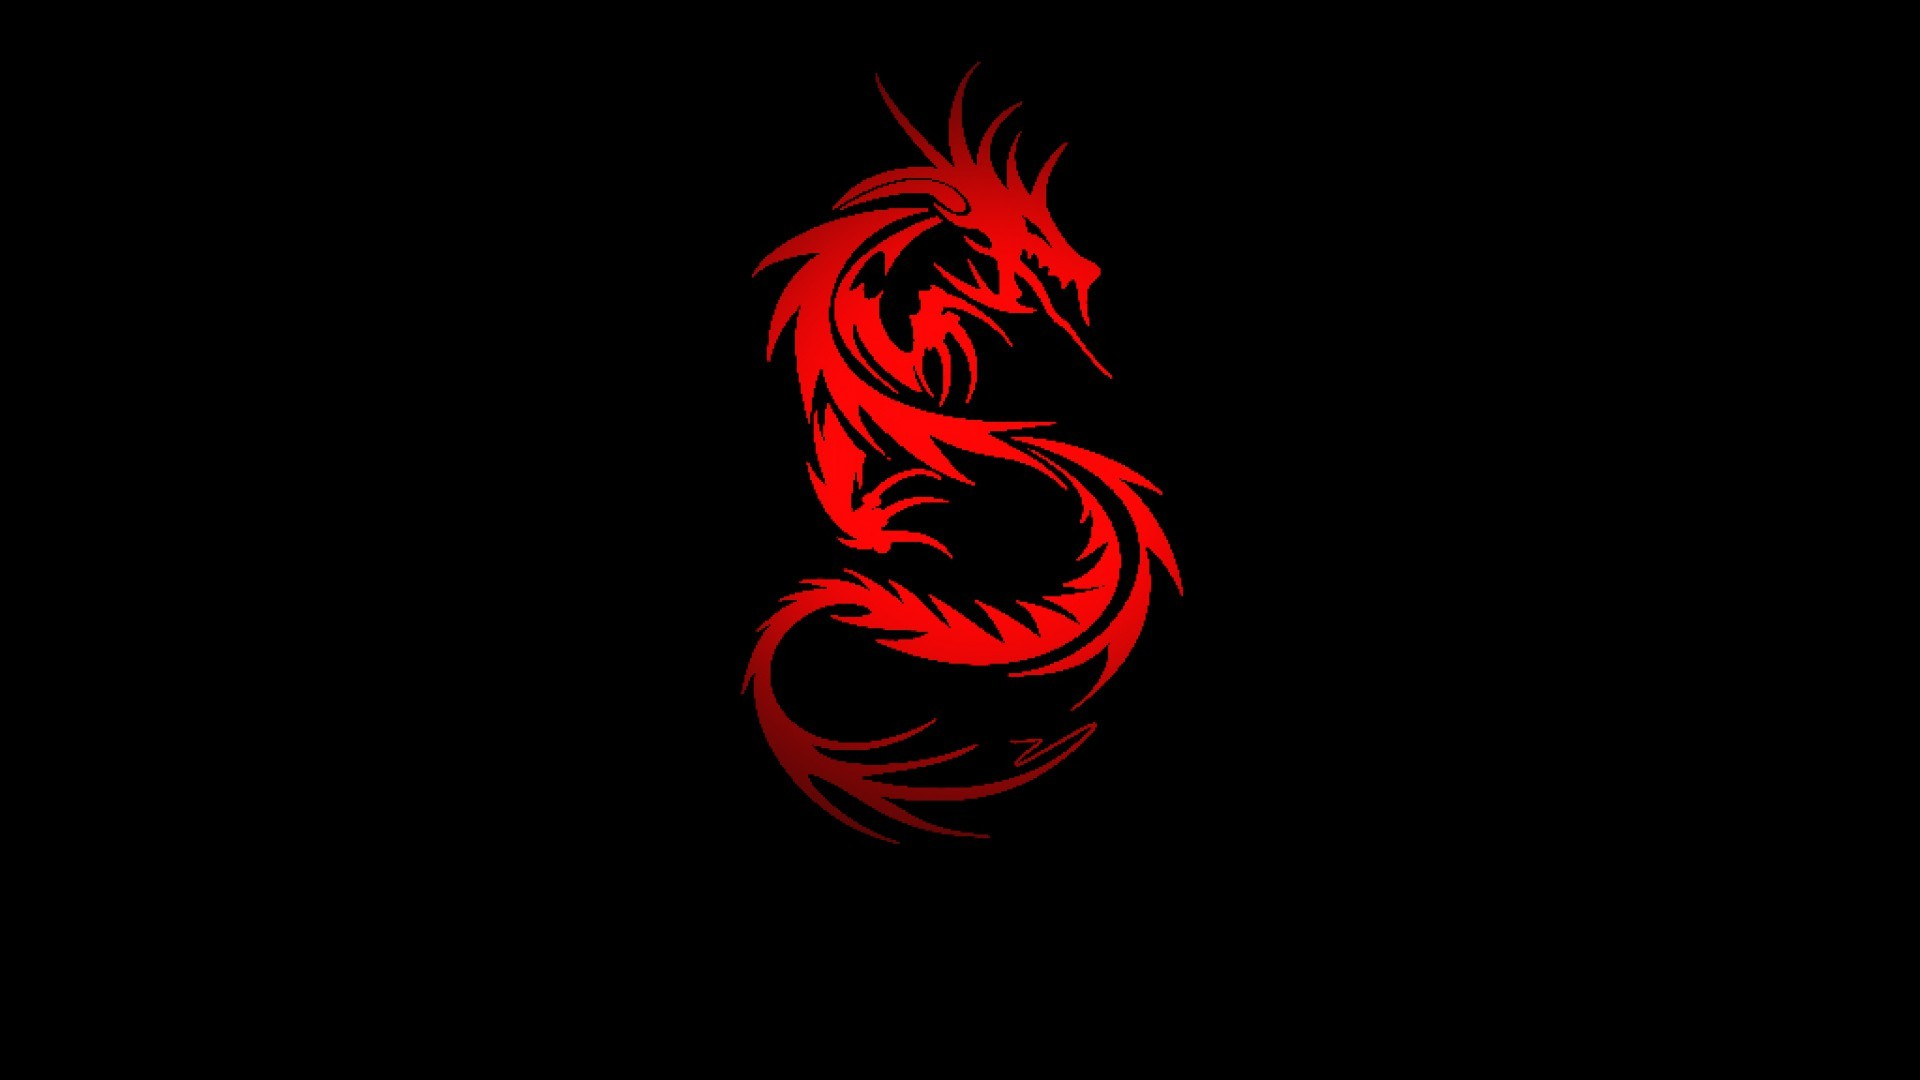 Red Dragon Wallpaper Hd 65 Images